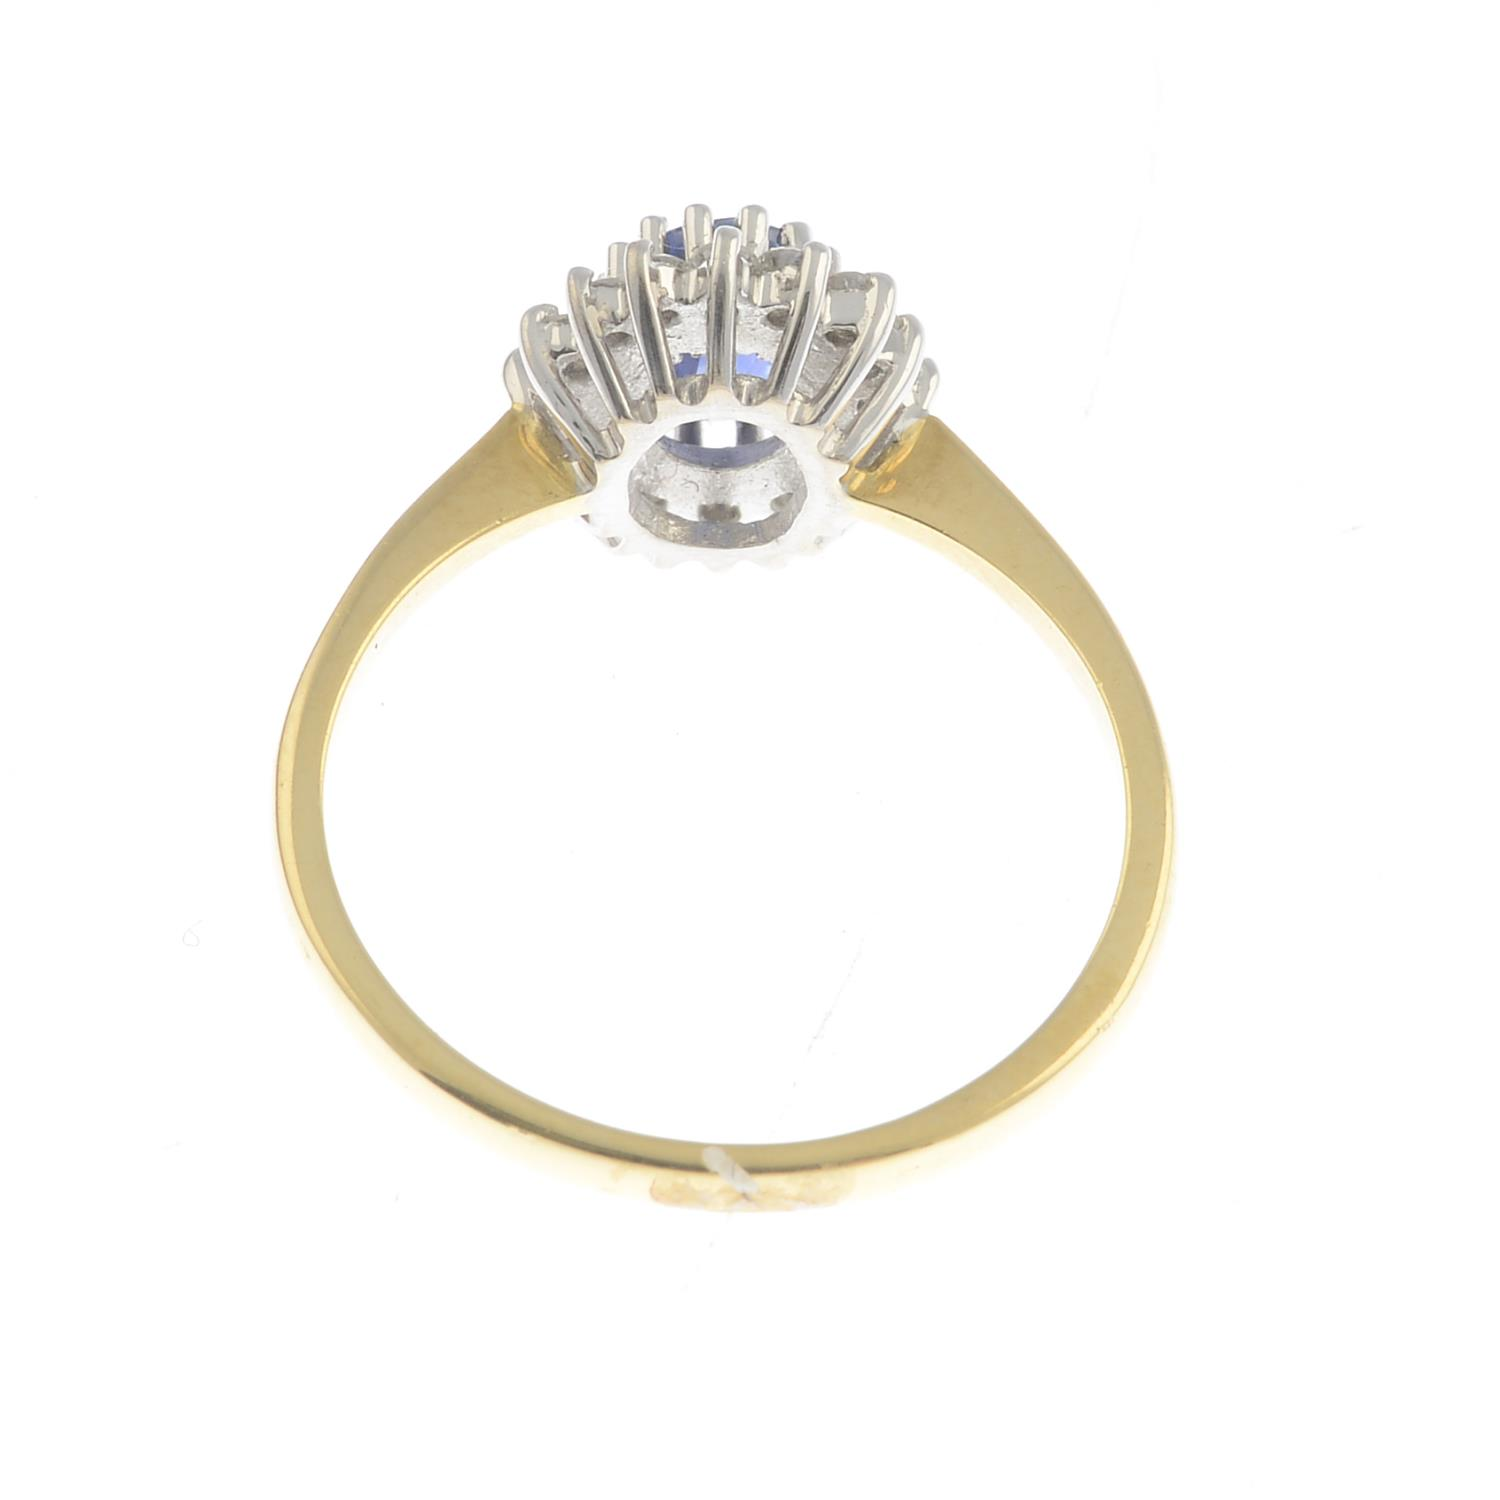 Lot 42 - An 18ct gold sapphire and diamond cluster ring.Calculated sapphire weight 0.80ct,